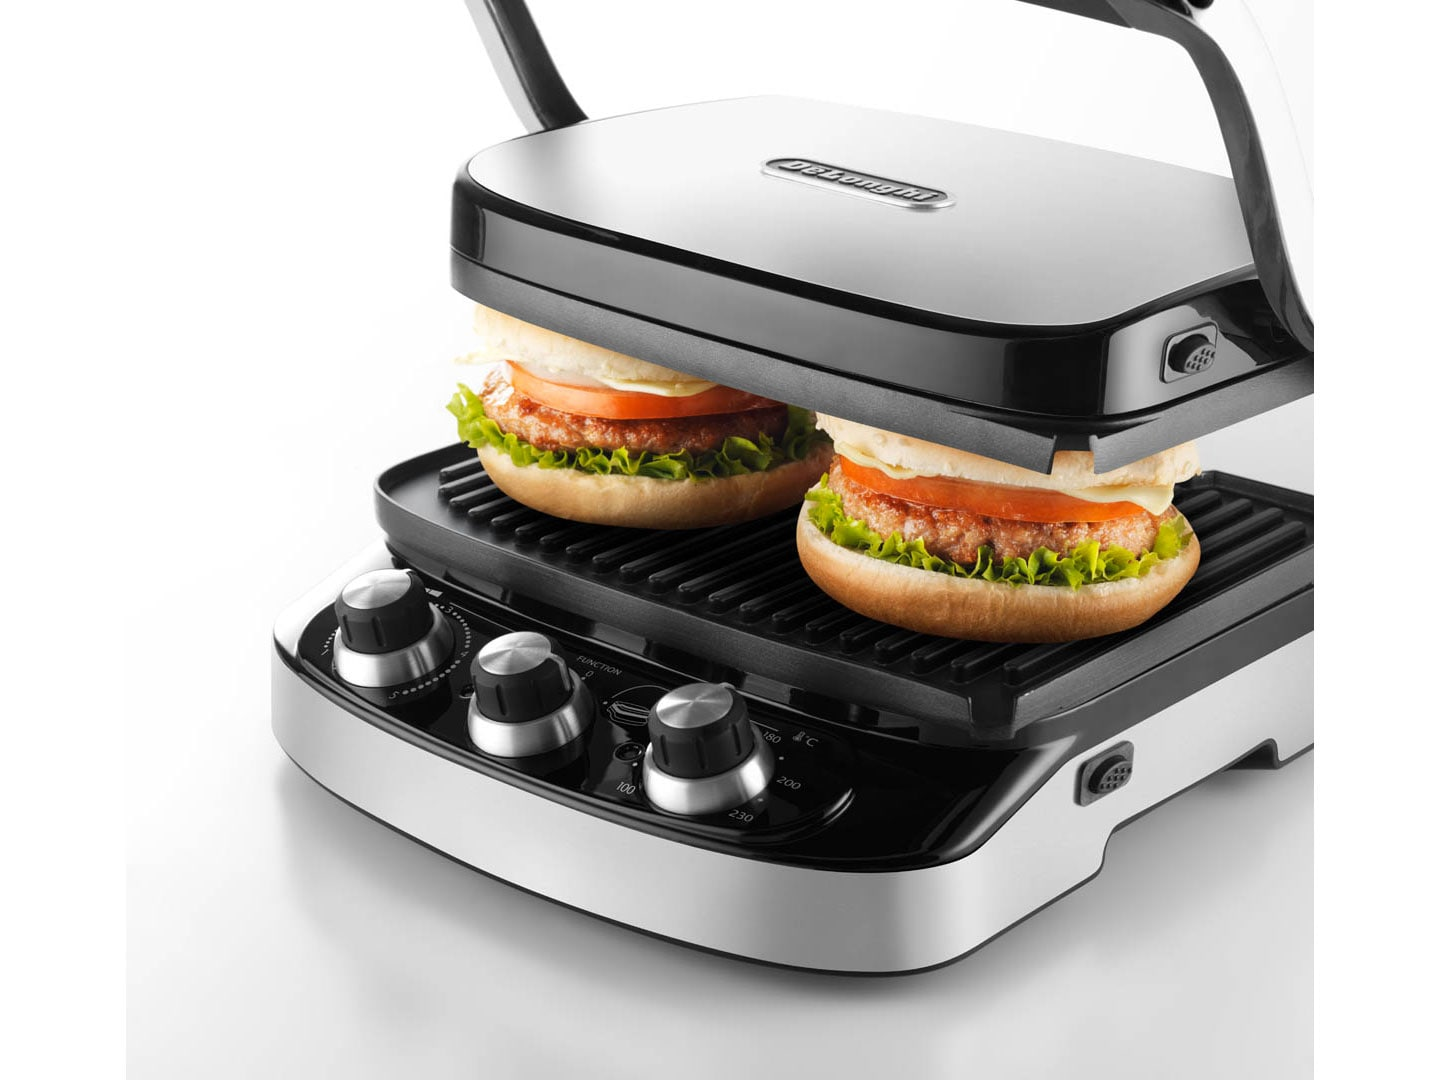 5 In 1 Indoor Grill Griddle Panini Press Cgh902